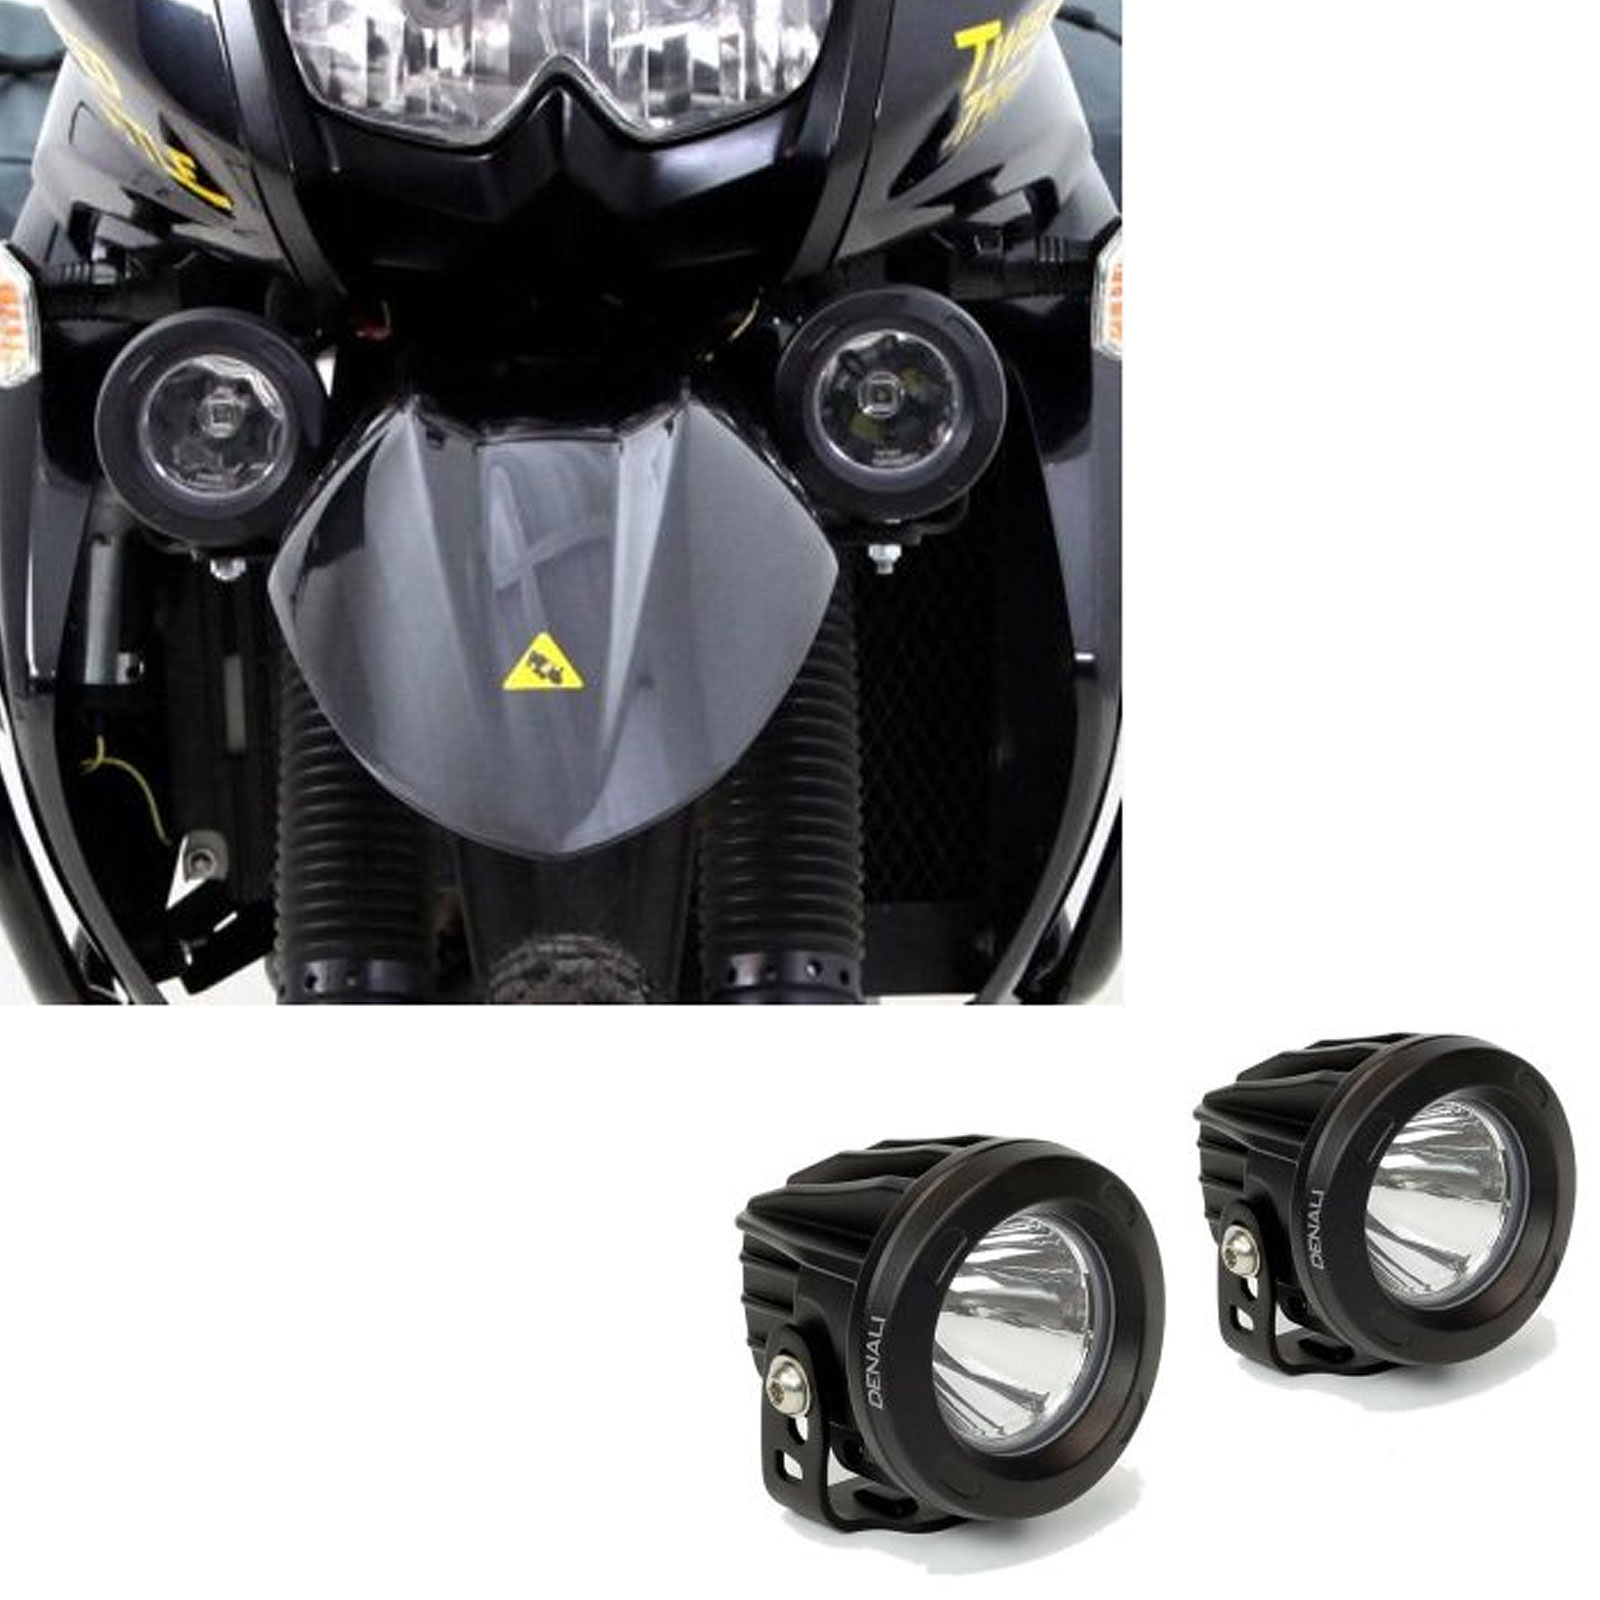 lighting parts spot auxiliary accessories motorcycle fog lamp vehicle x led for c indicators chrome passing harley lights